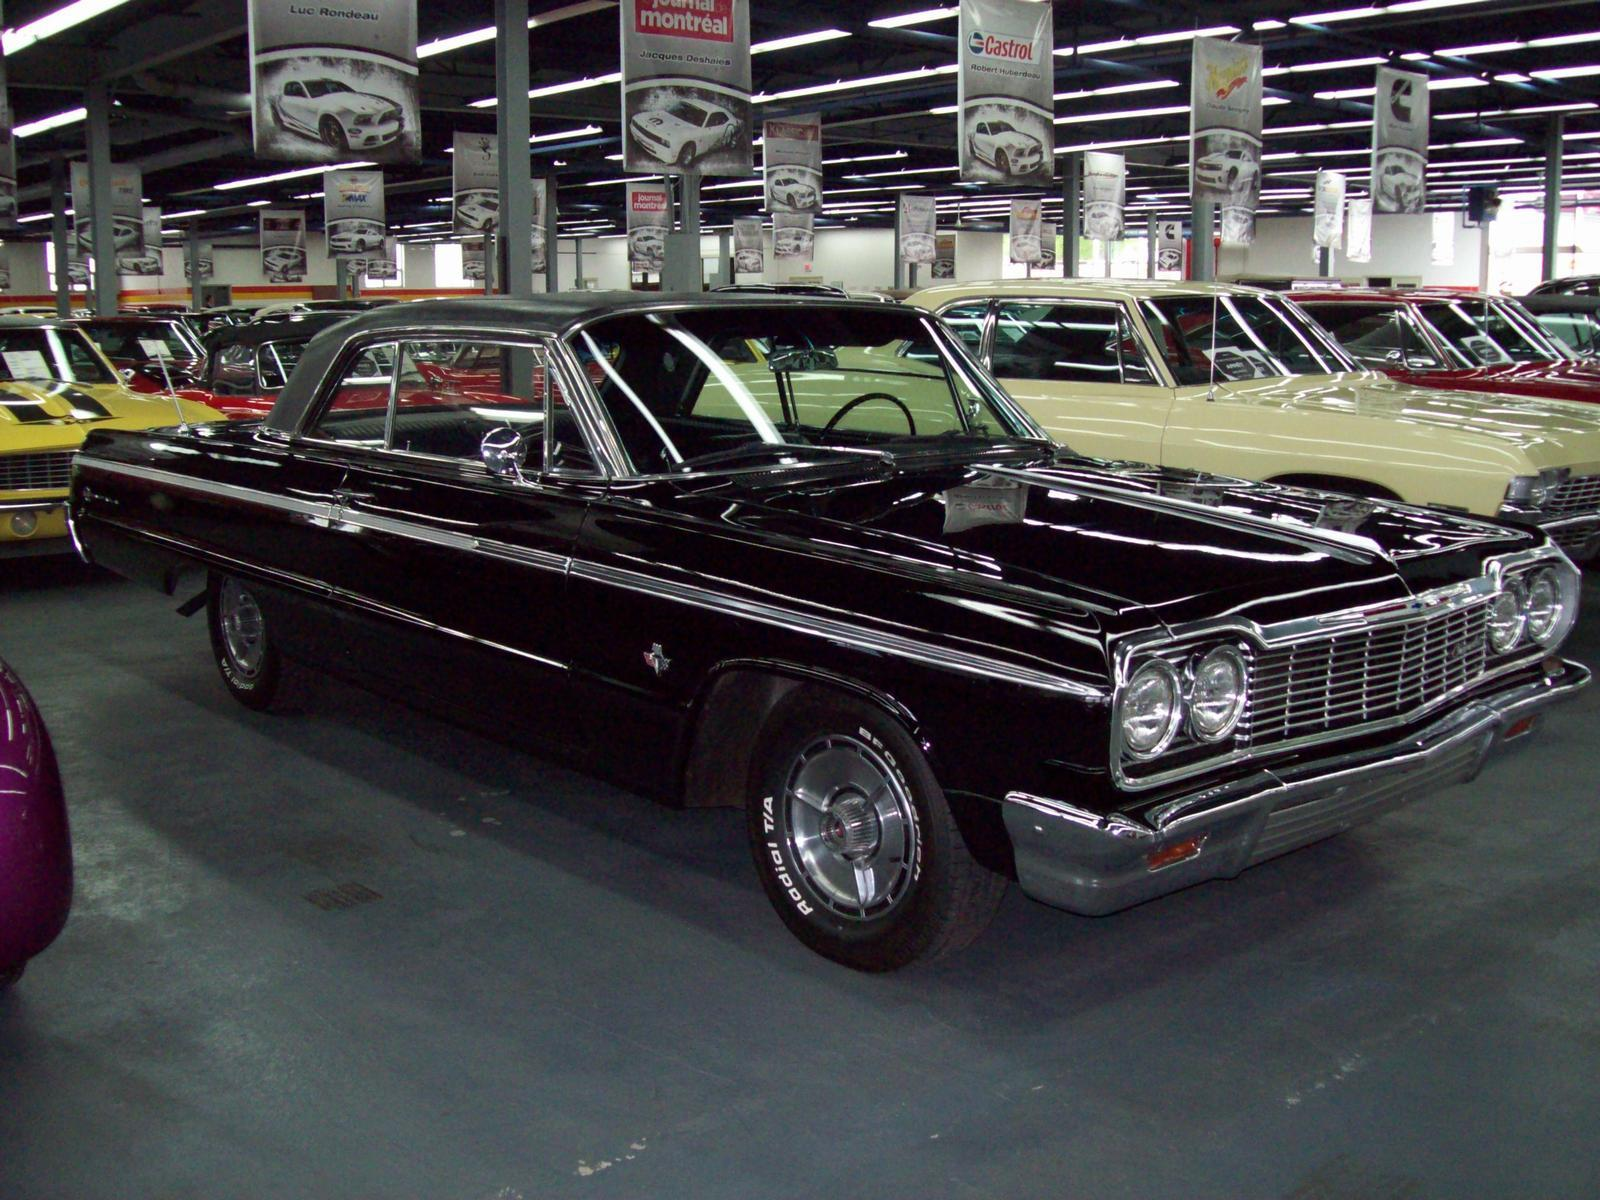 Used 1964 chevrolet impala ss 409 for sale in saint l onard john scotti classic cars h1r 2y7 2070799